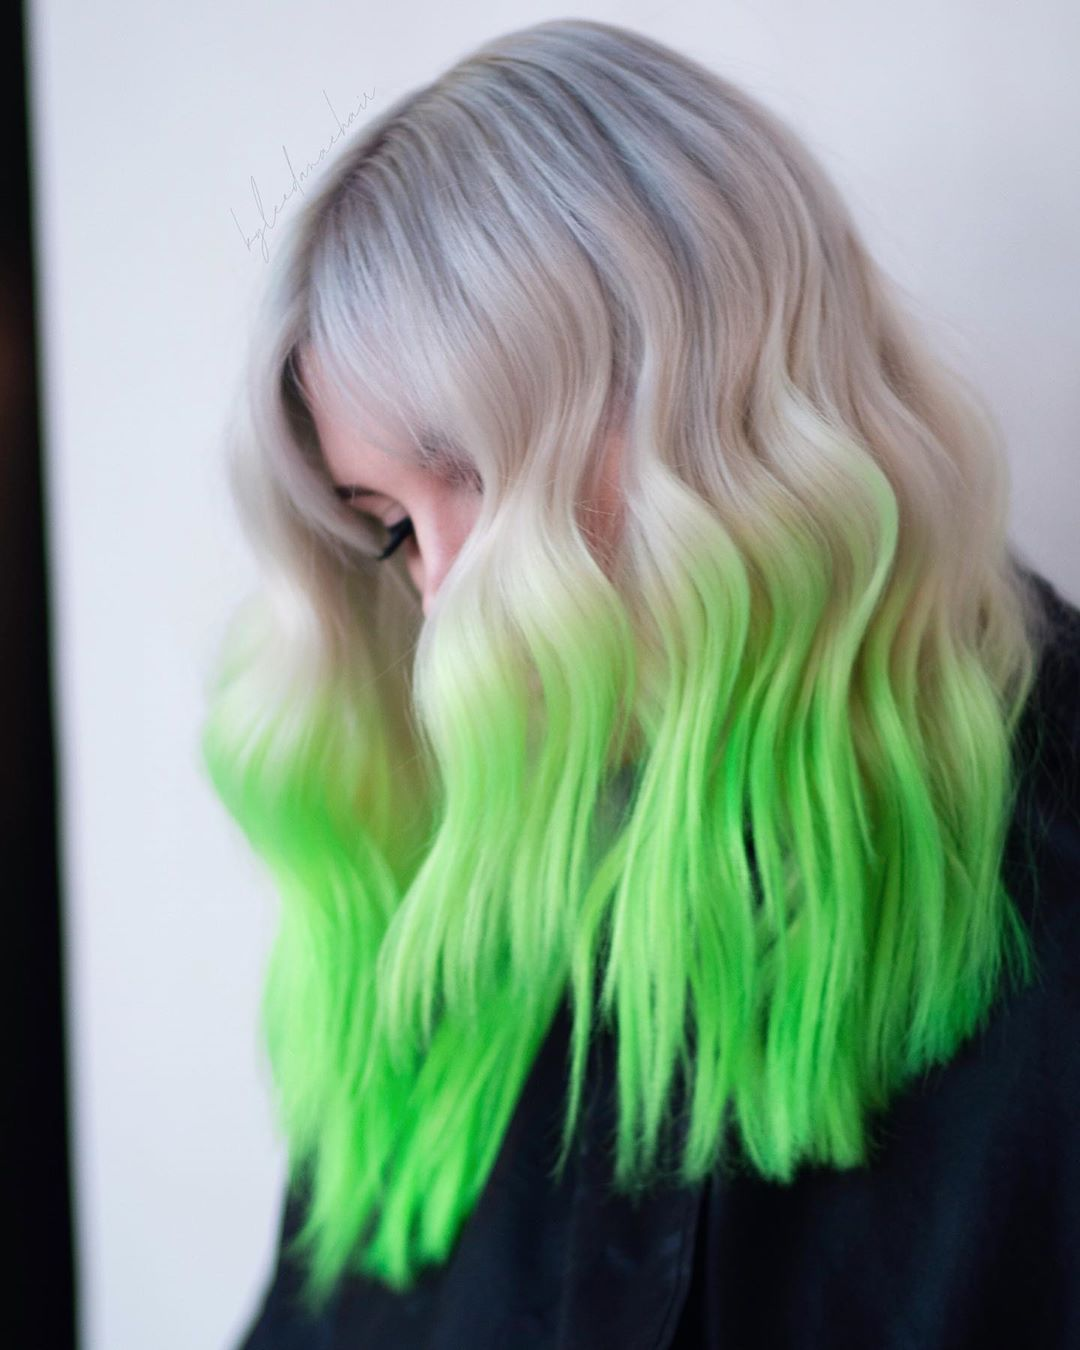 Loving These Soft Silver Roots And Vivid Neon Green Ends On